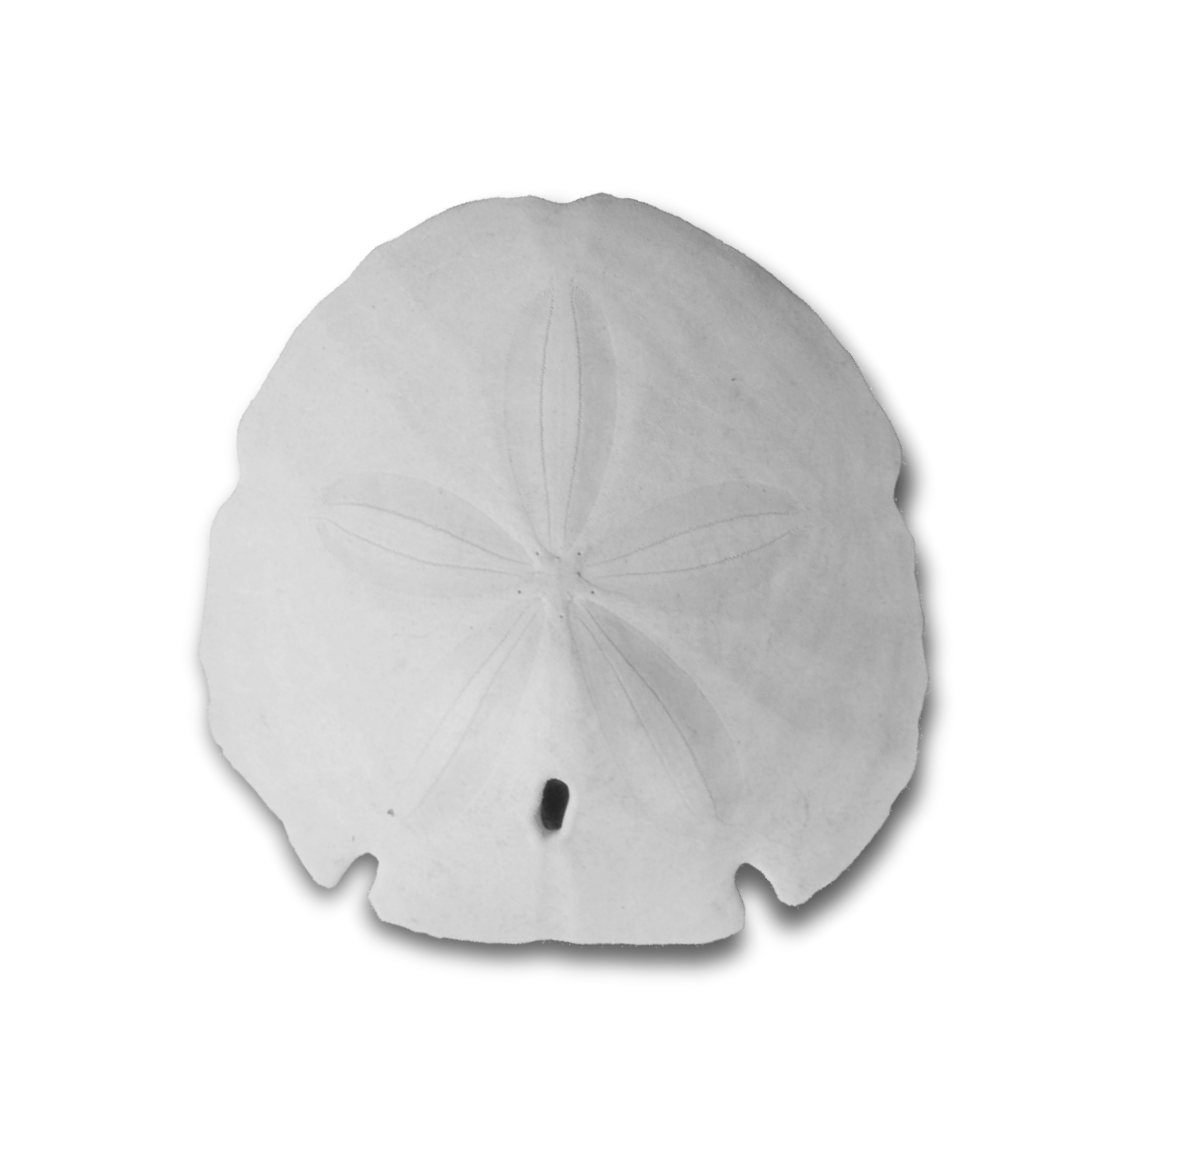 Sand dollar png. Black and white transparent